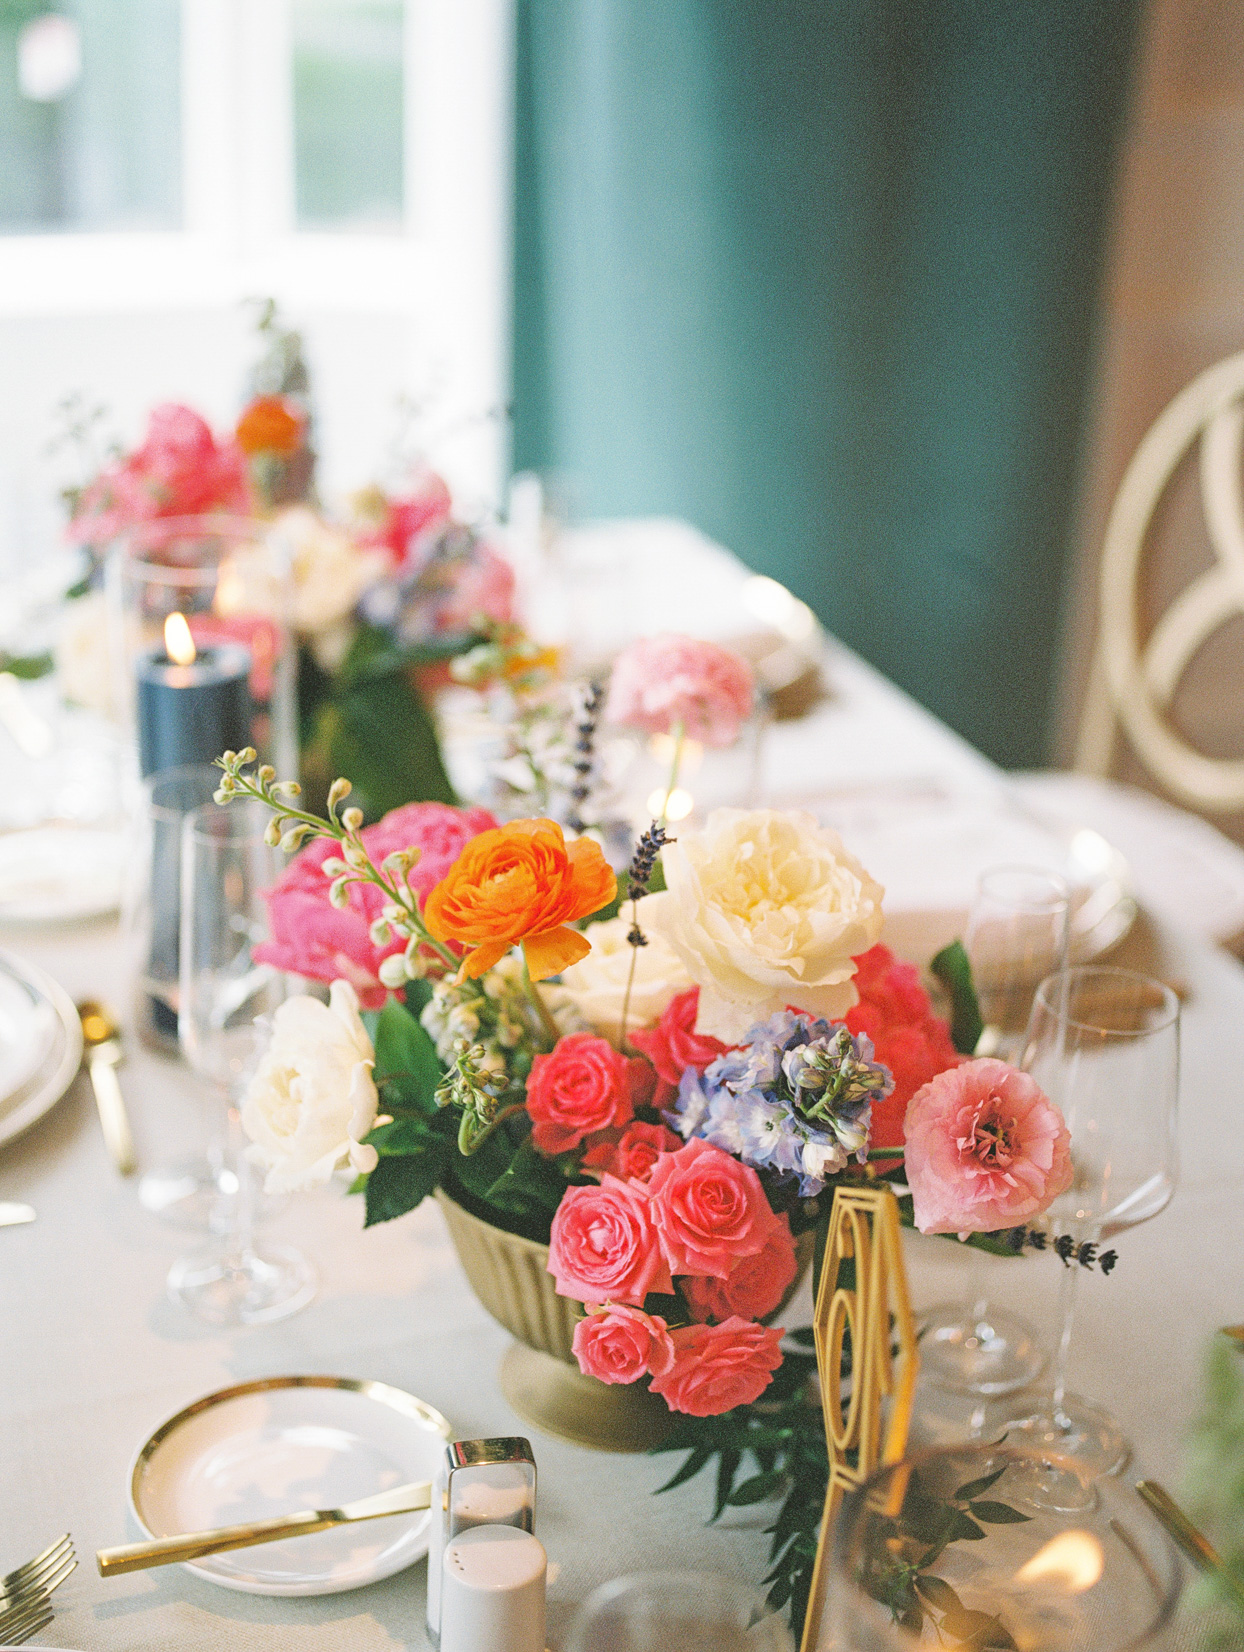 colorful floral centerpieces at wedding reception